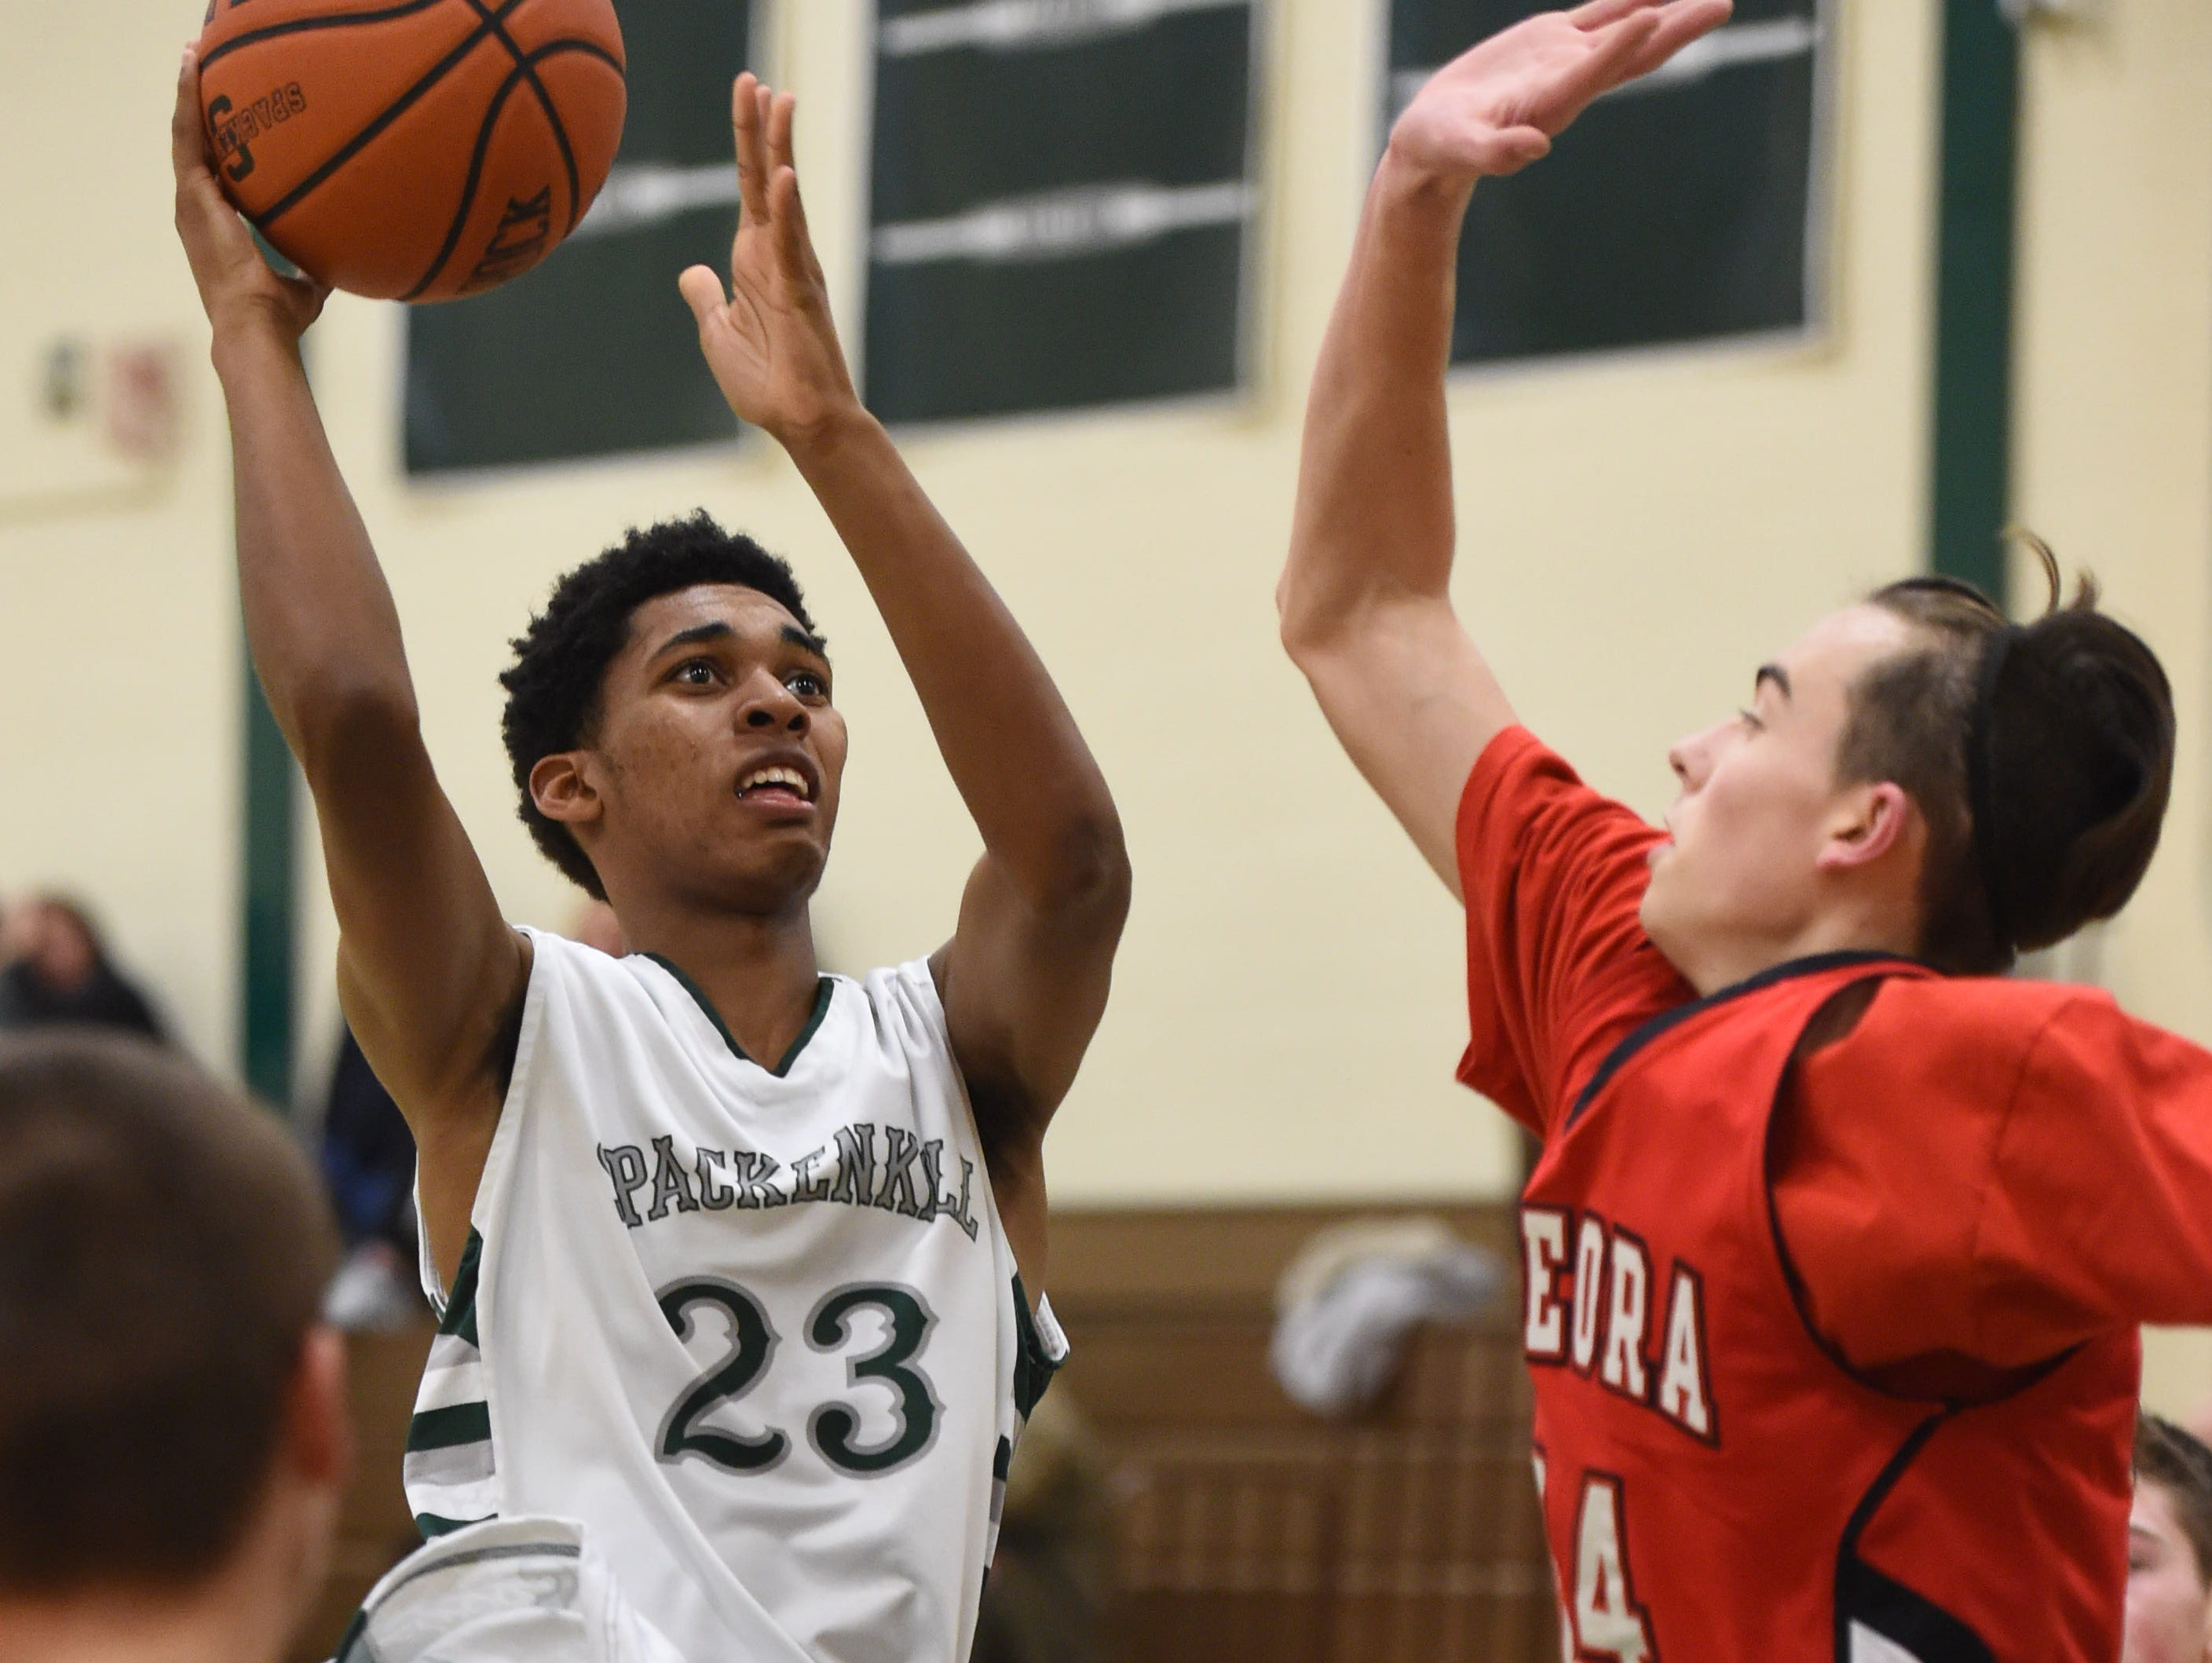 Spackenkill's Stanley Garrant takes a shot as Onteora's Miles Eberhard covers him during Thursday's game at Spackenkill.